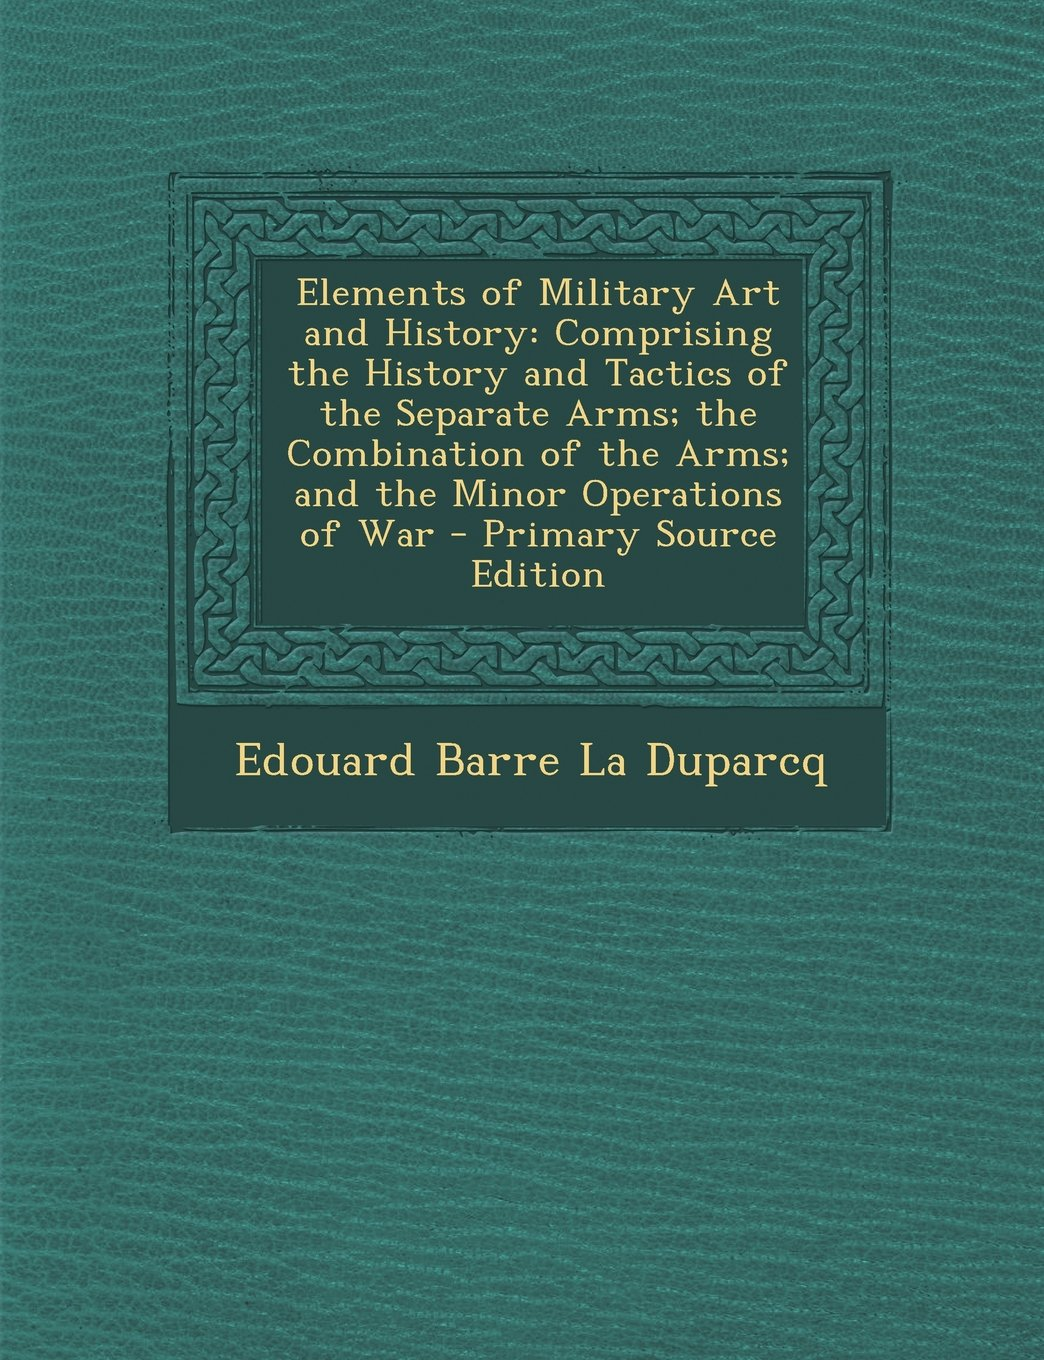 Read Online Elements of Military Art and History: Comprising the History and Tactics of the Separate Arms; The Combination of the Arms; And the Minor Operations O PDF